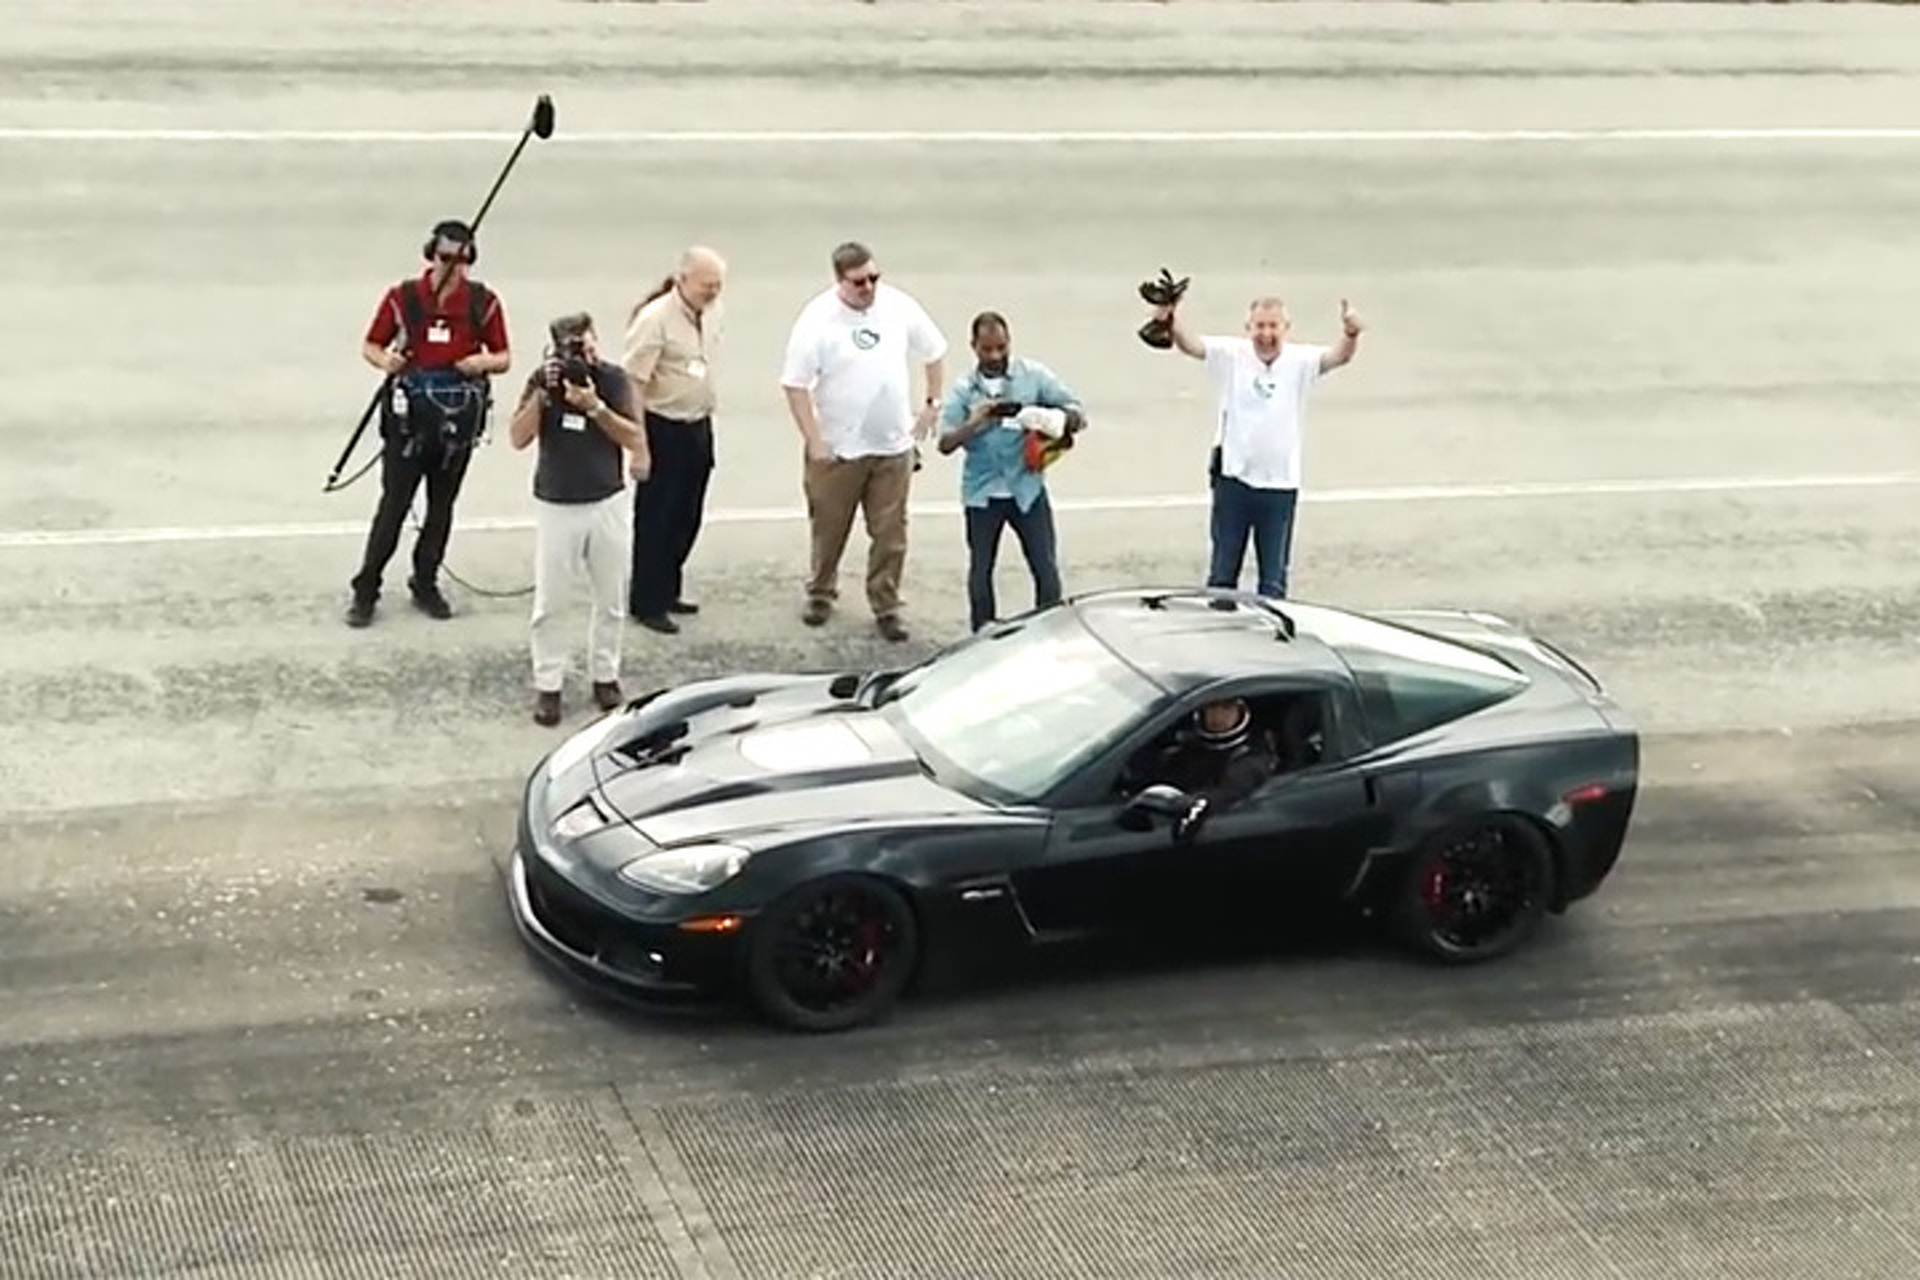 The worlds fastest electric car - A Corvette Is Now The World S Fastest Street Legal Electric Car Product 2016 03 07 09 30 03